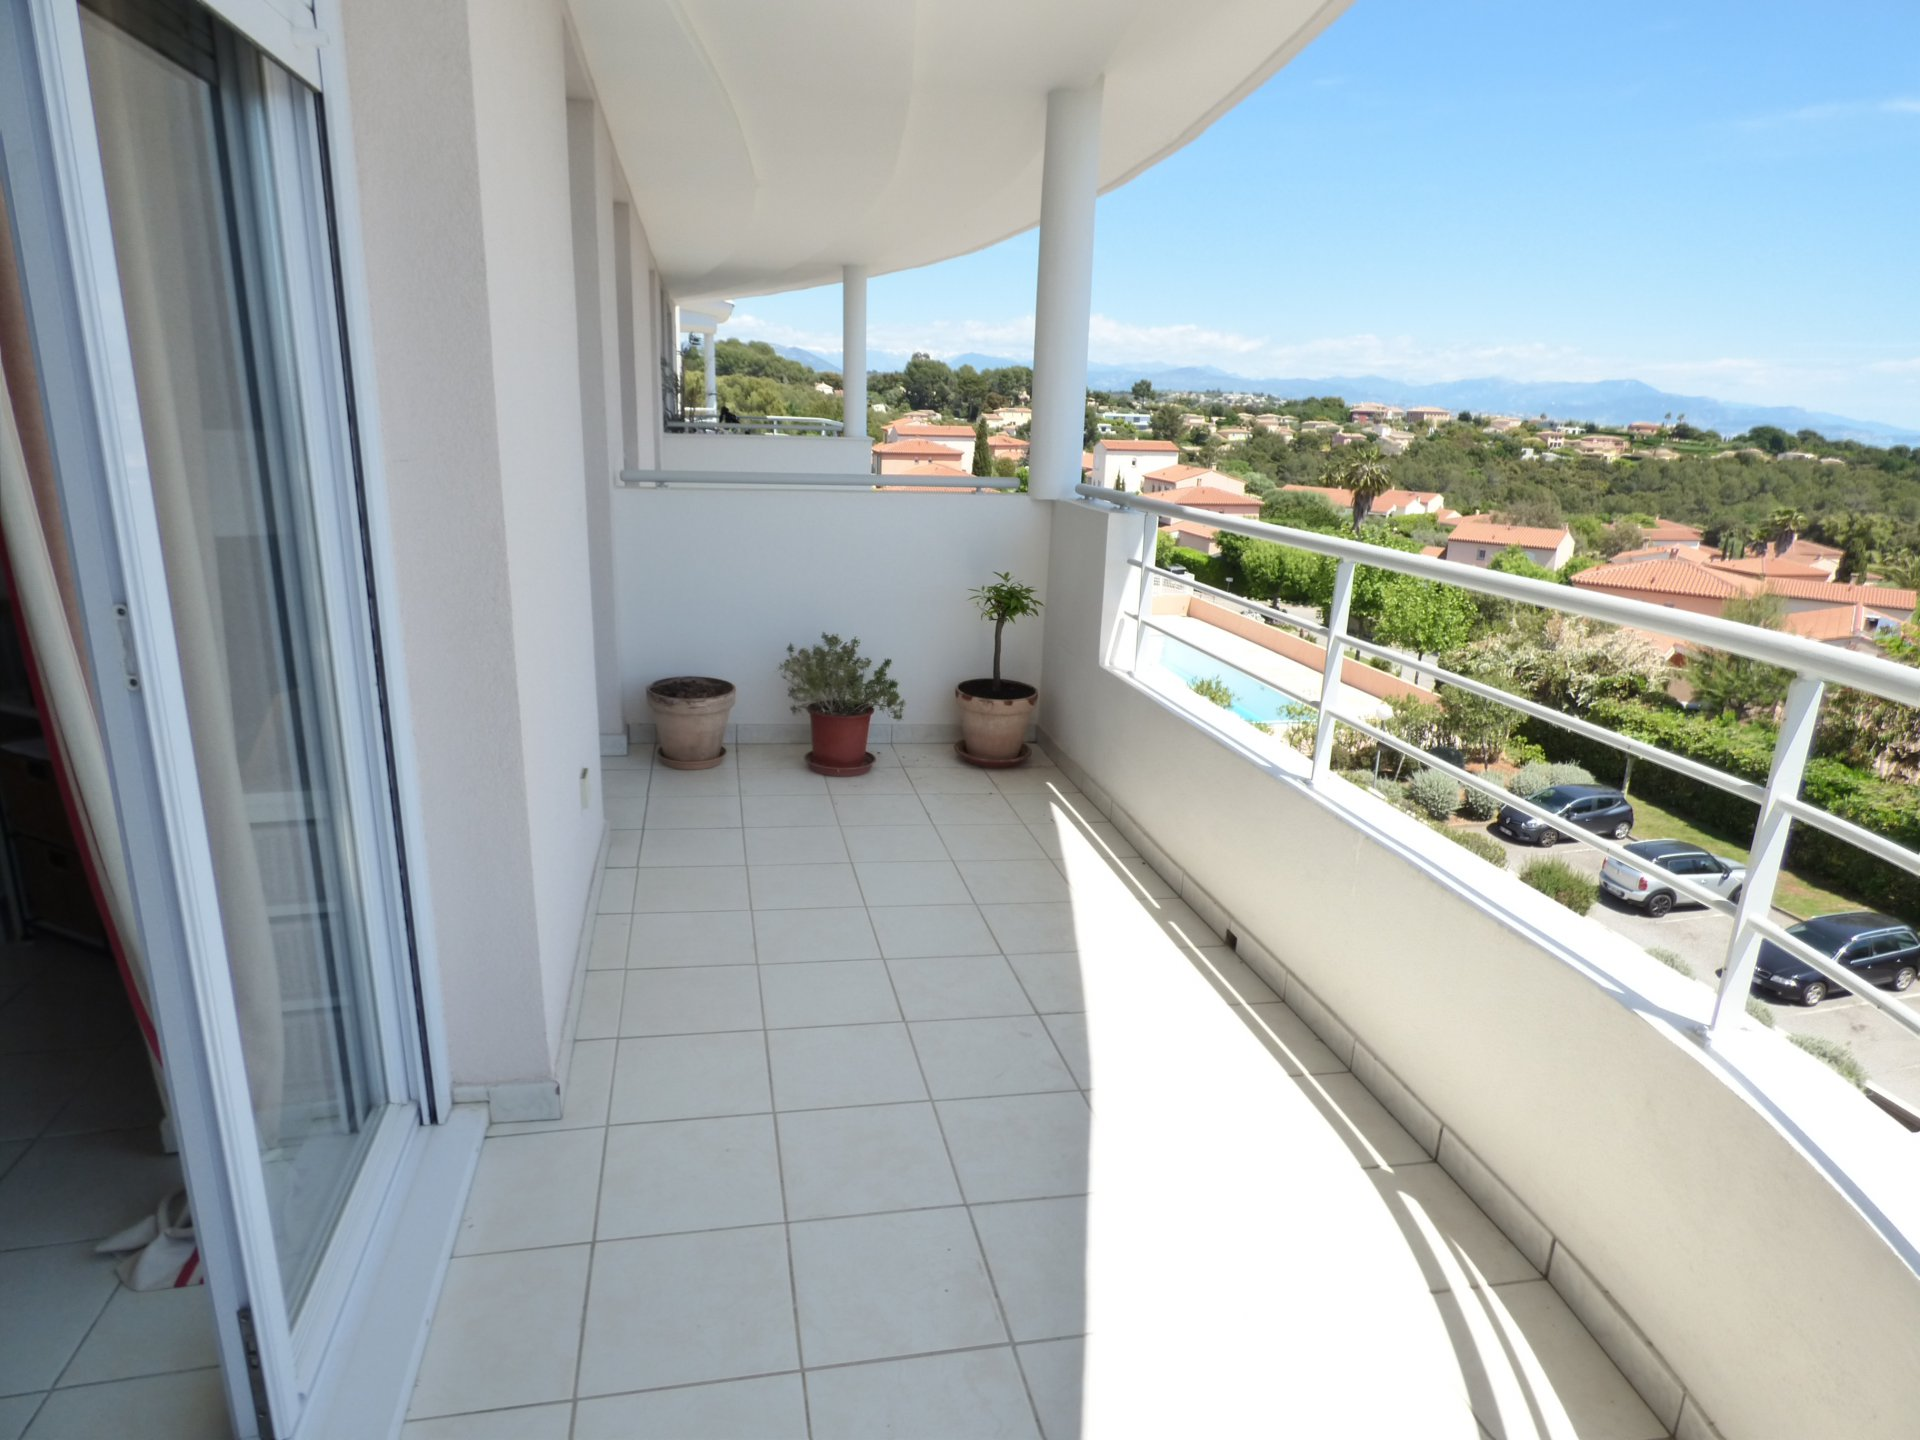 BIOT St. Philippe - Appartment 2 pièces  45 m² -panoramic sea view